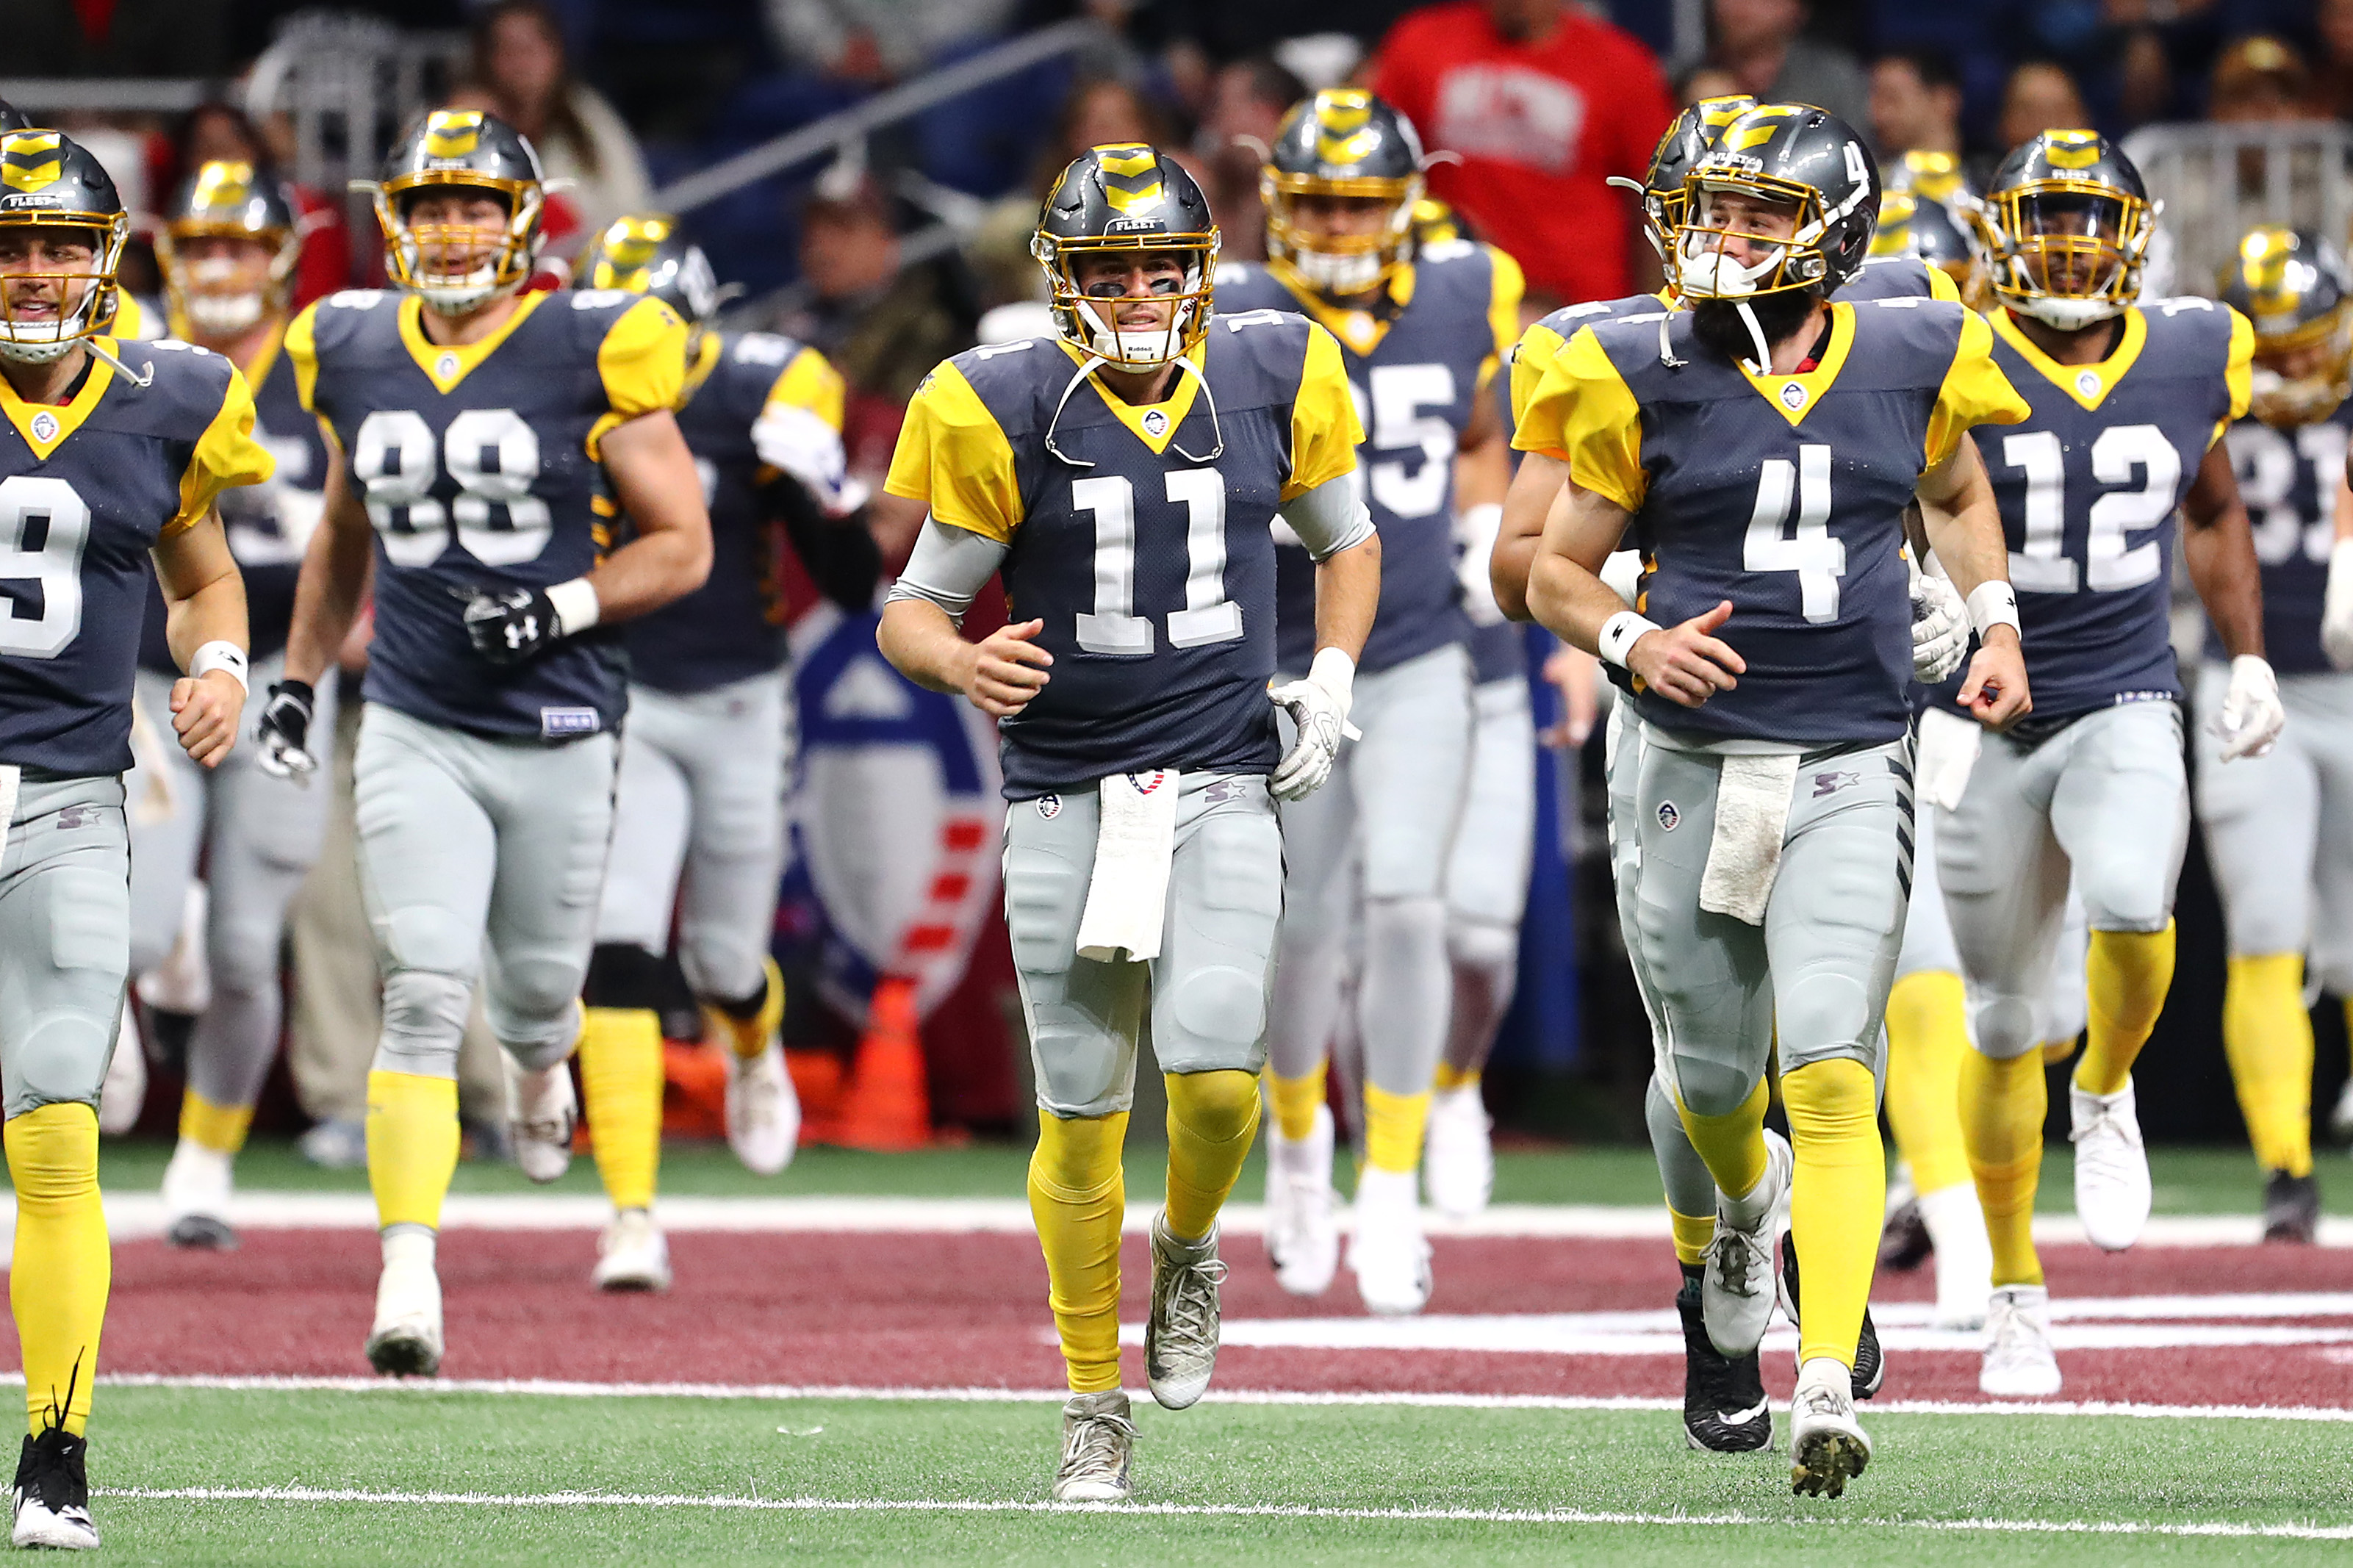 Fantasy football rankings: Rankings and projections for AAF Week 7